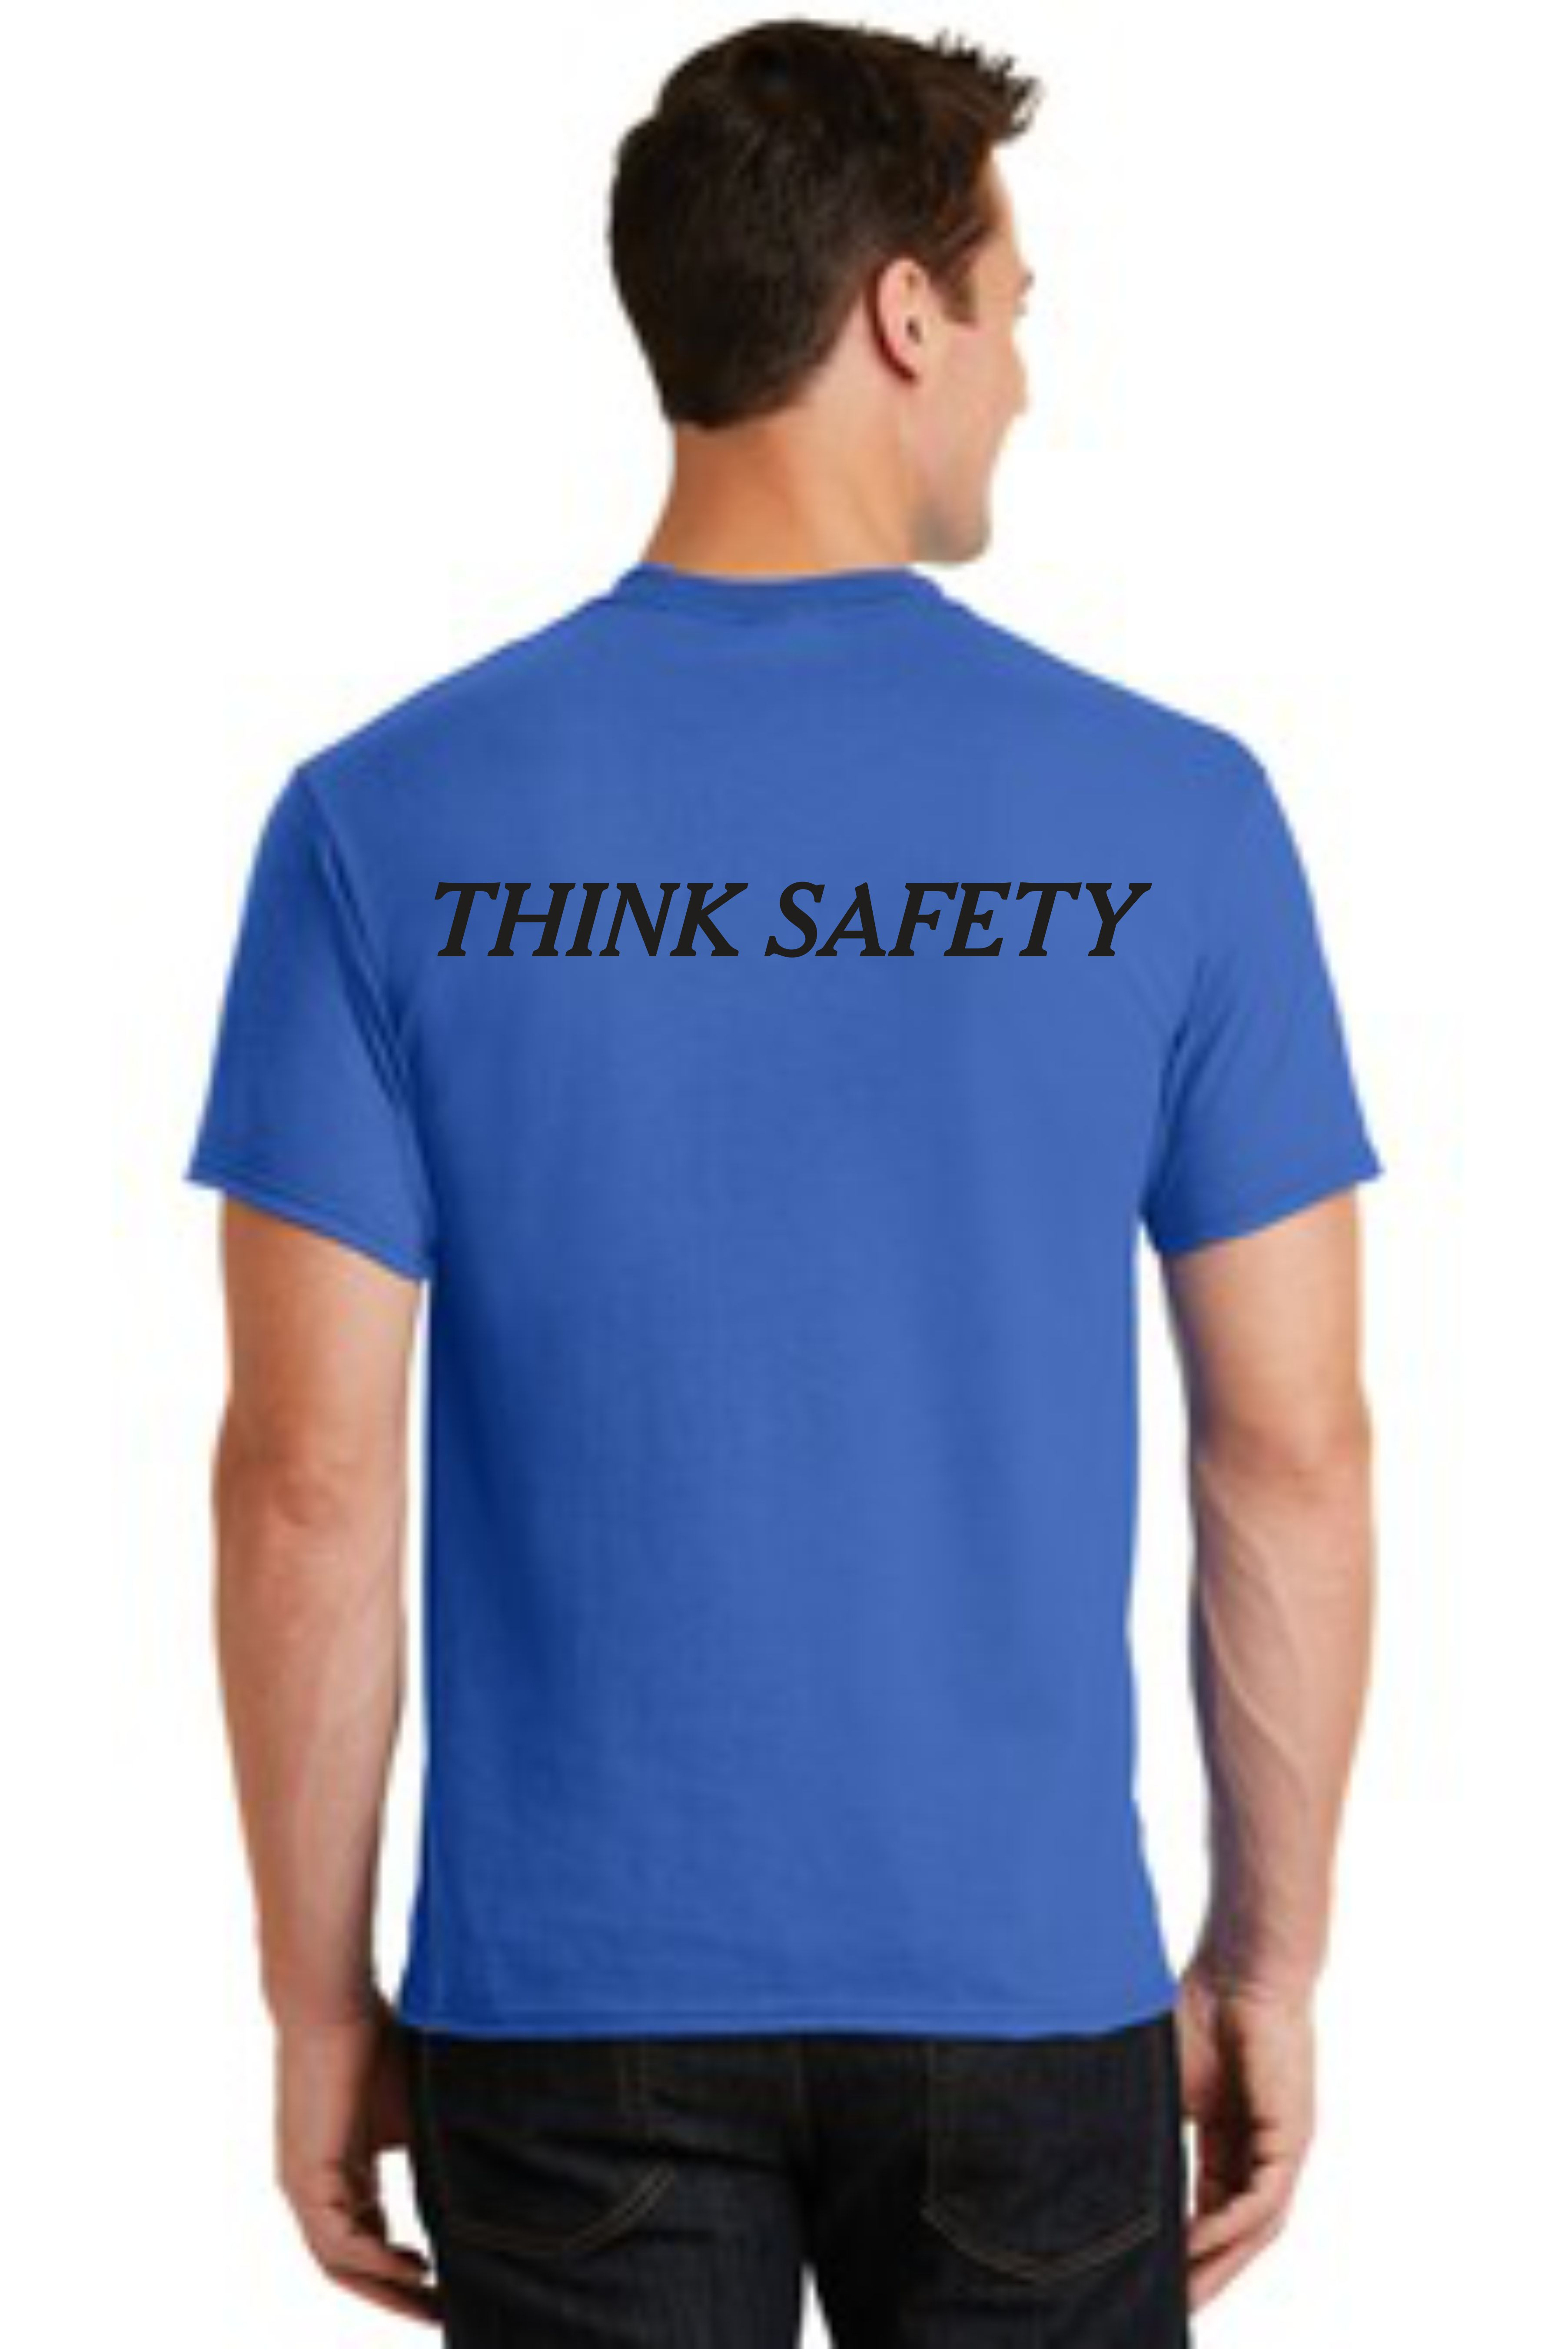 SAFETY T-SHIRT -- THINK SAFETY